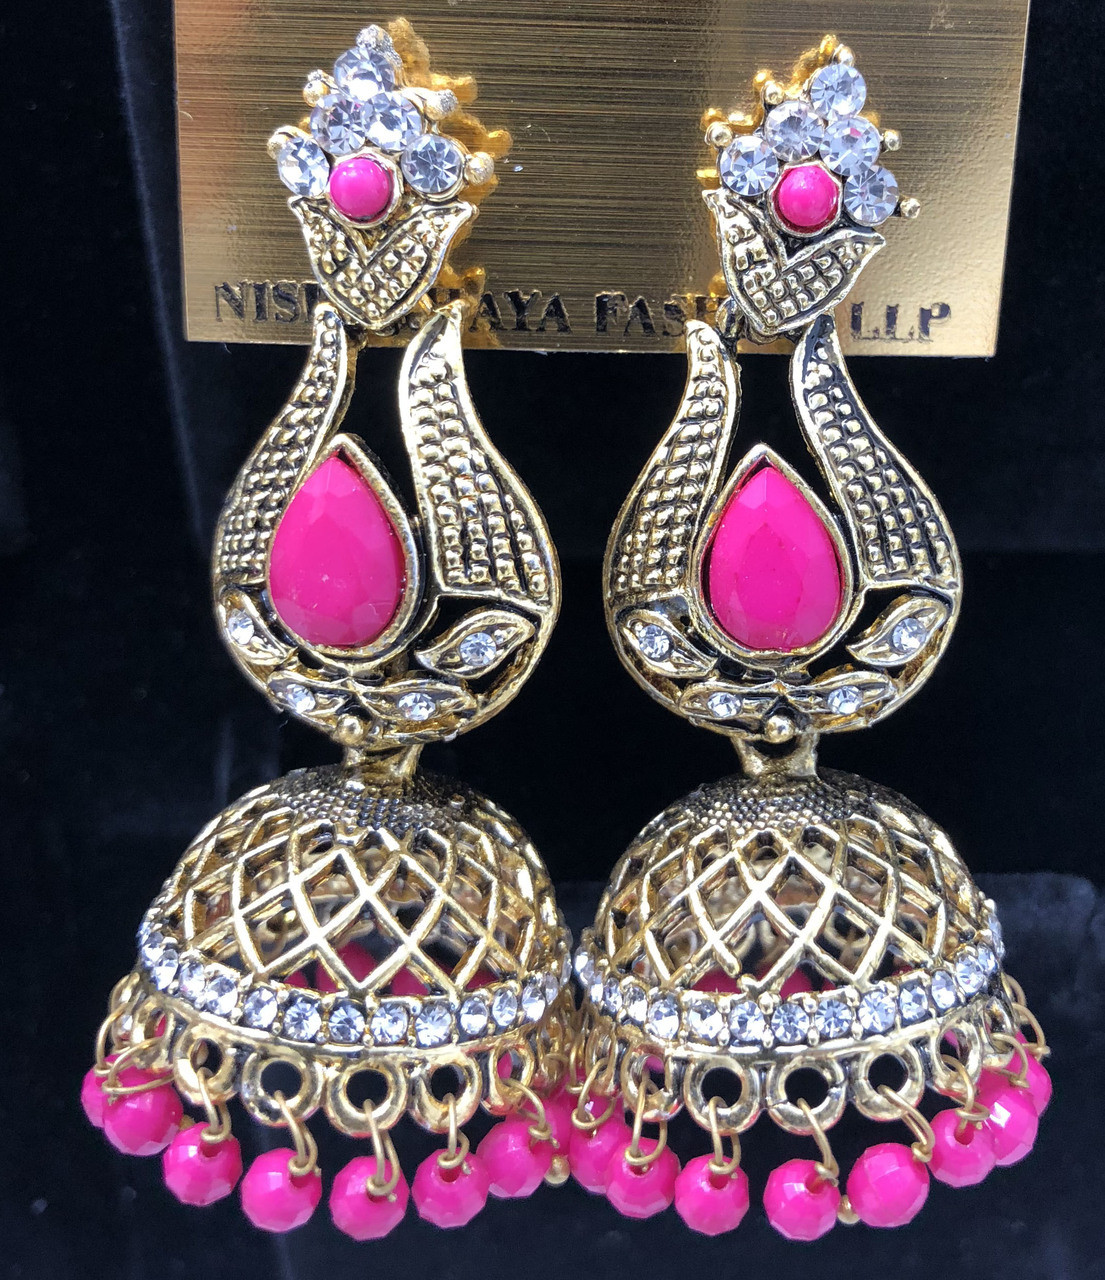 aff9a8d57 Home · Jewelry · Earrings; E2 Magenta Hand Crafted Black Indian Earrings  Set Jhumka. hand crafted Indian earring set. Loading zoom